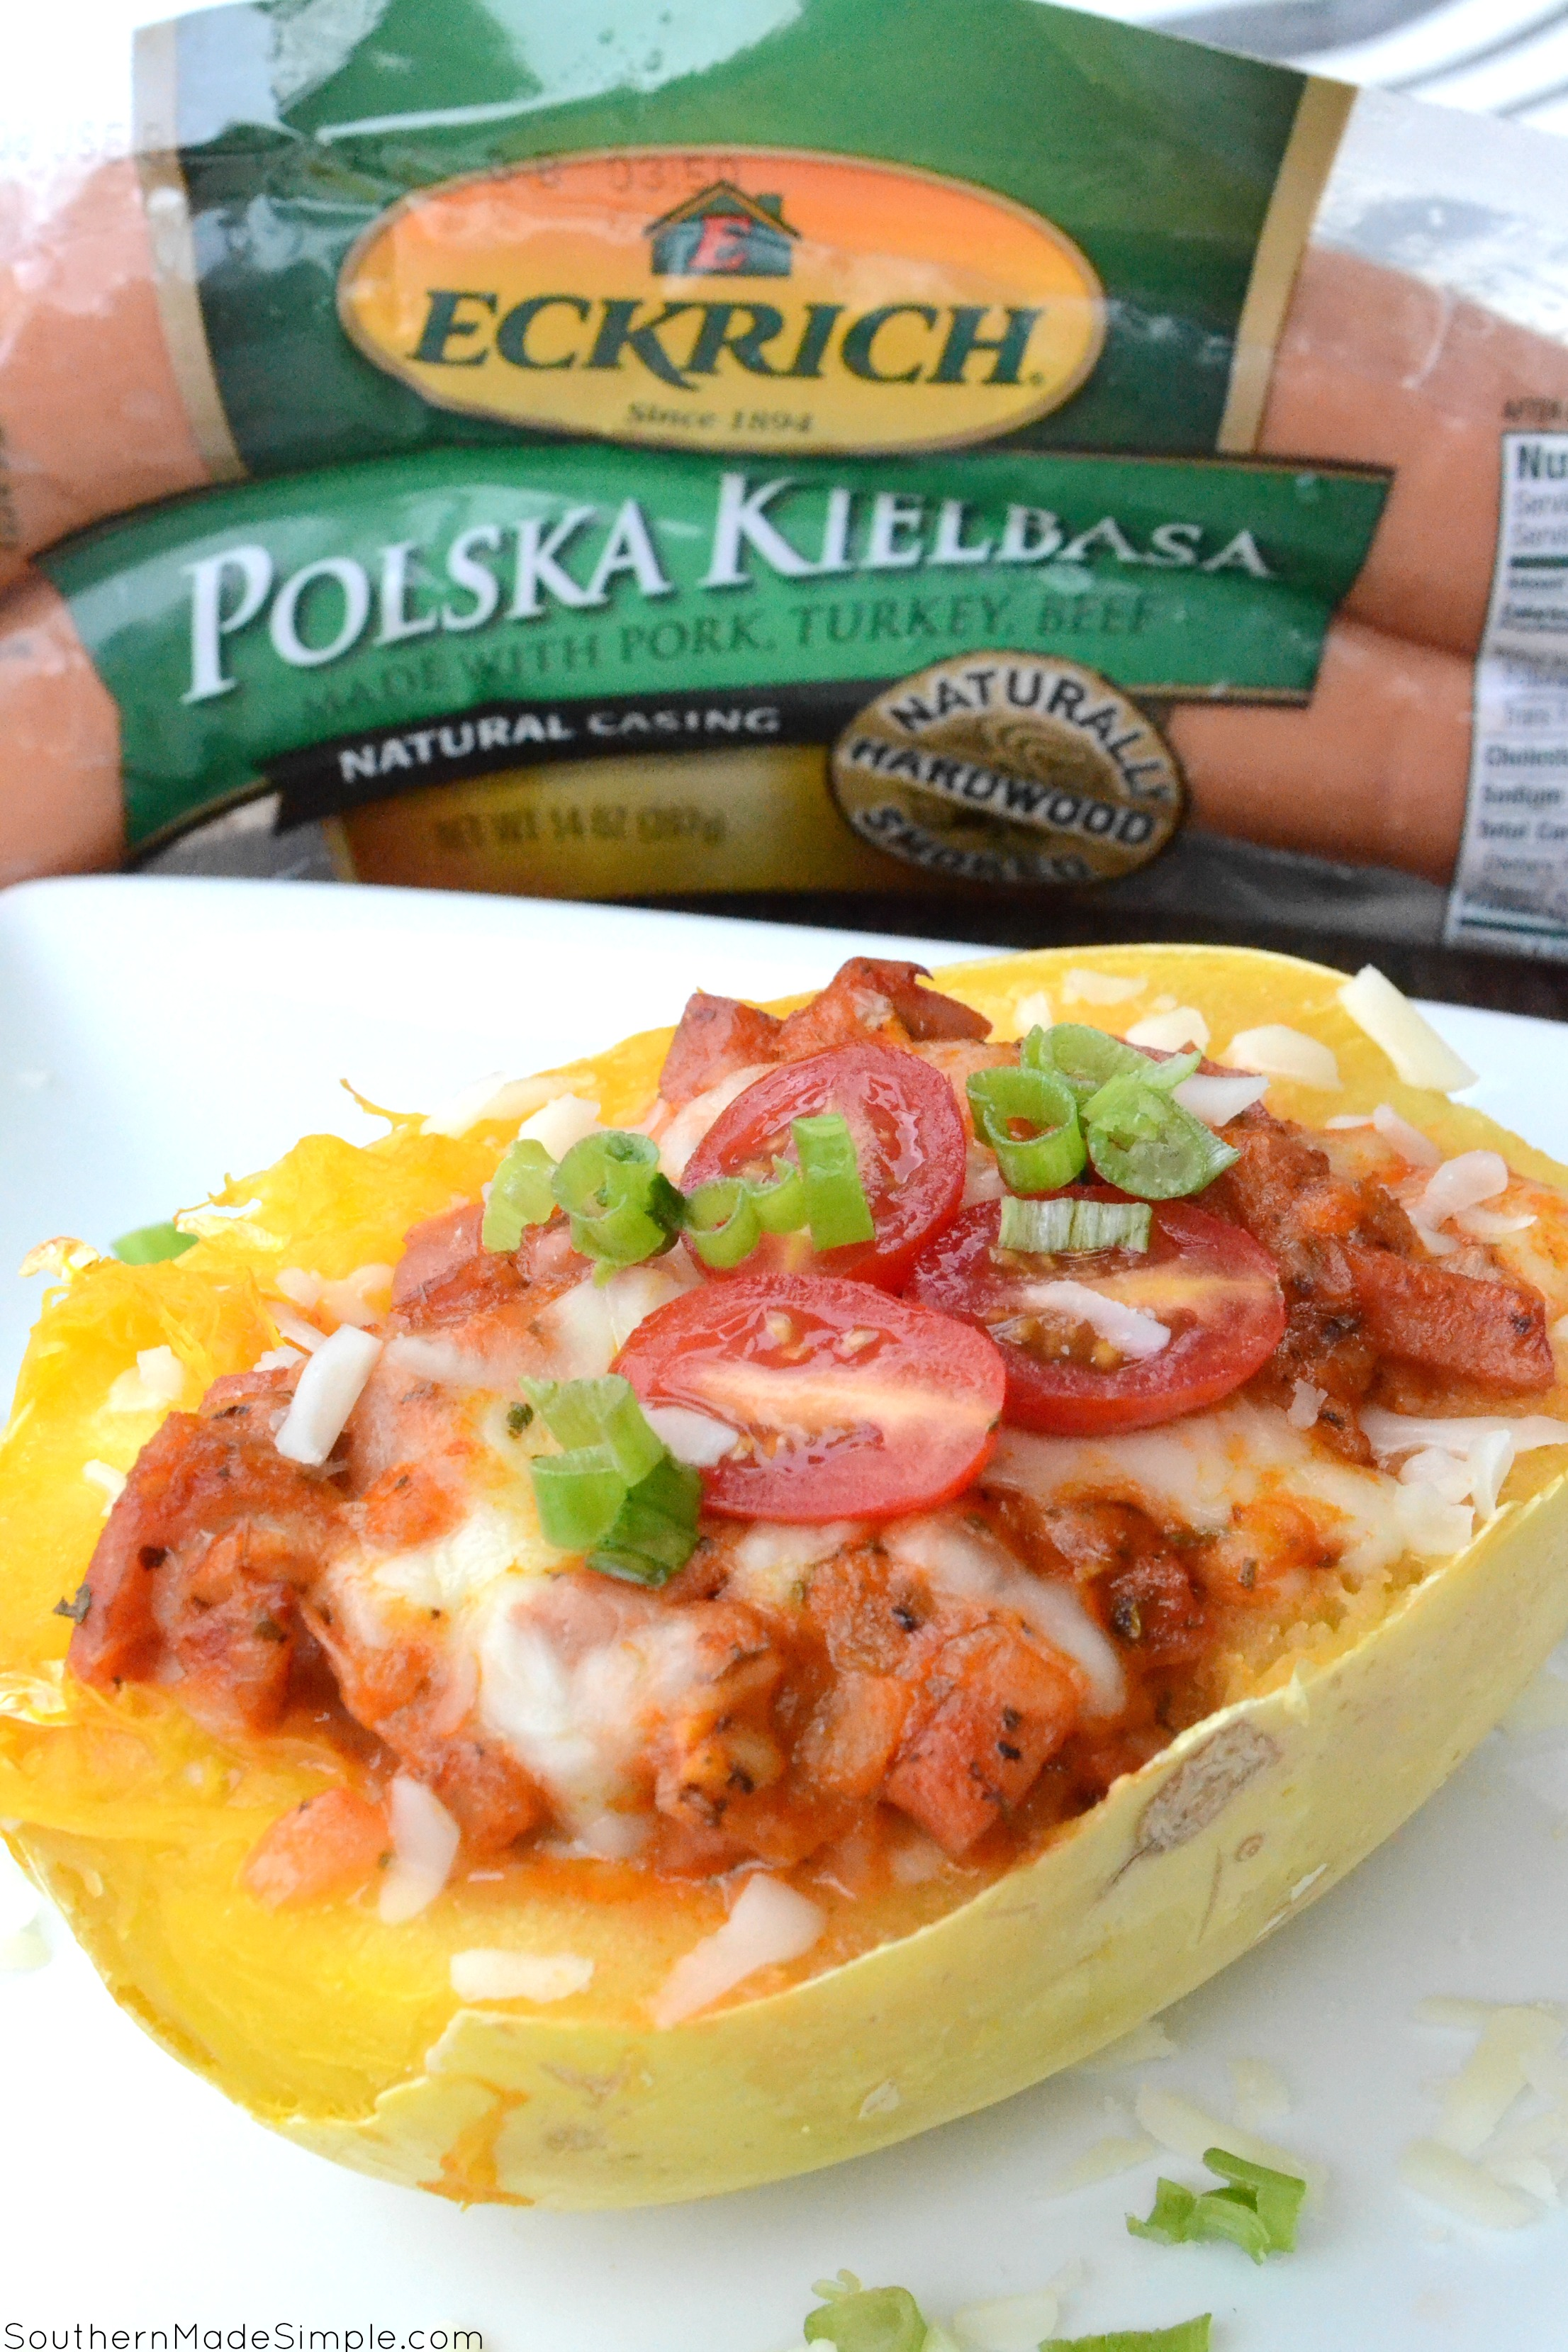 Ready to revamp your family weeknight meals? This Cheesy Smoked Sausage Stuffed Spaghetti Squash is a fun twist on classic spaghetti with a simple & healthier twist! #EverydayEckrich #ad